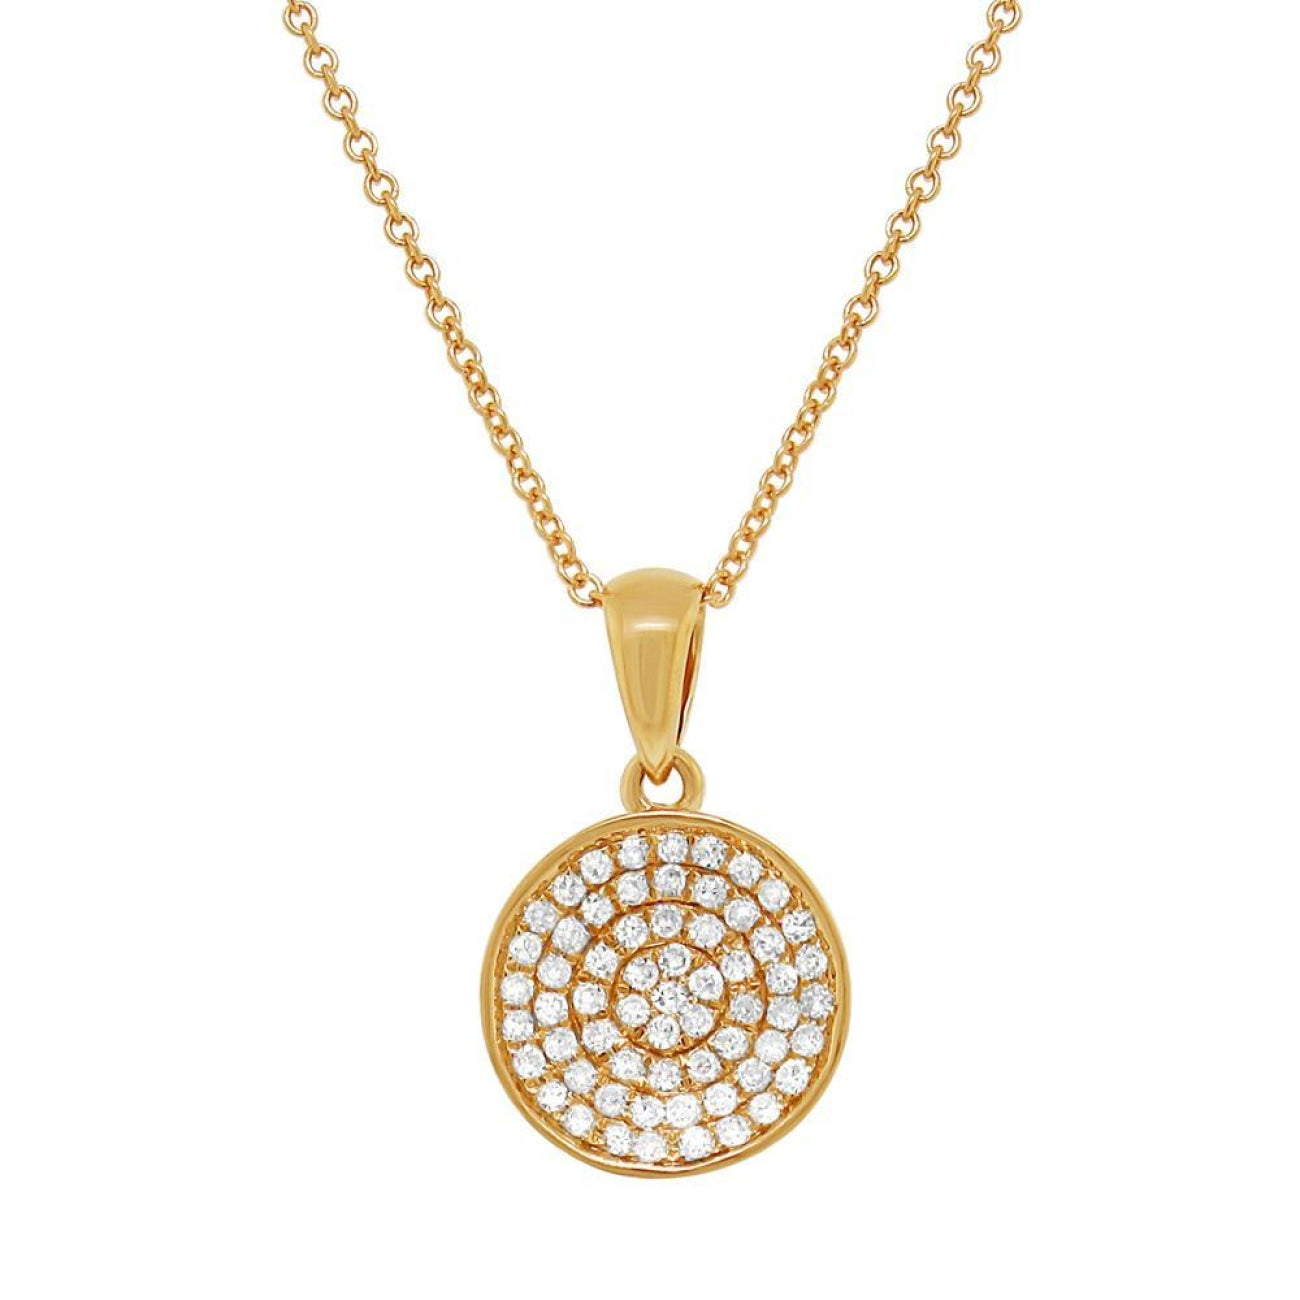 Shy Creation Jewelry - 14k Yellow Gold Diamond Pave Pendant | Manfredi Jewels